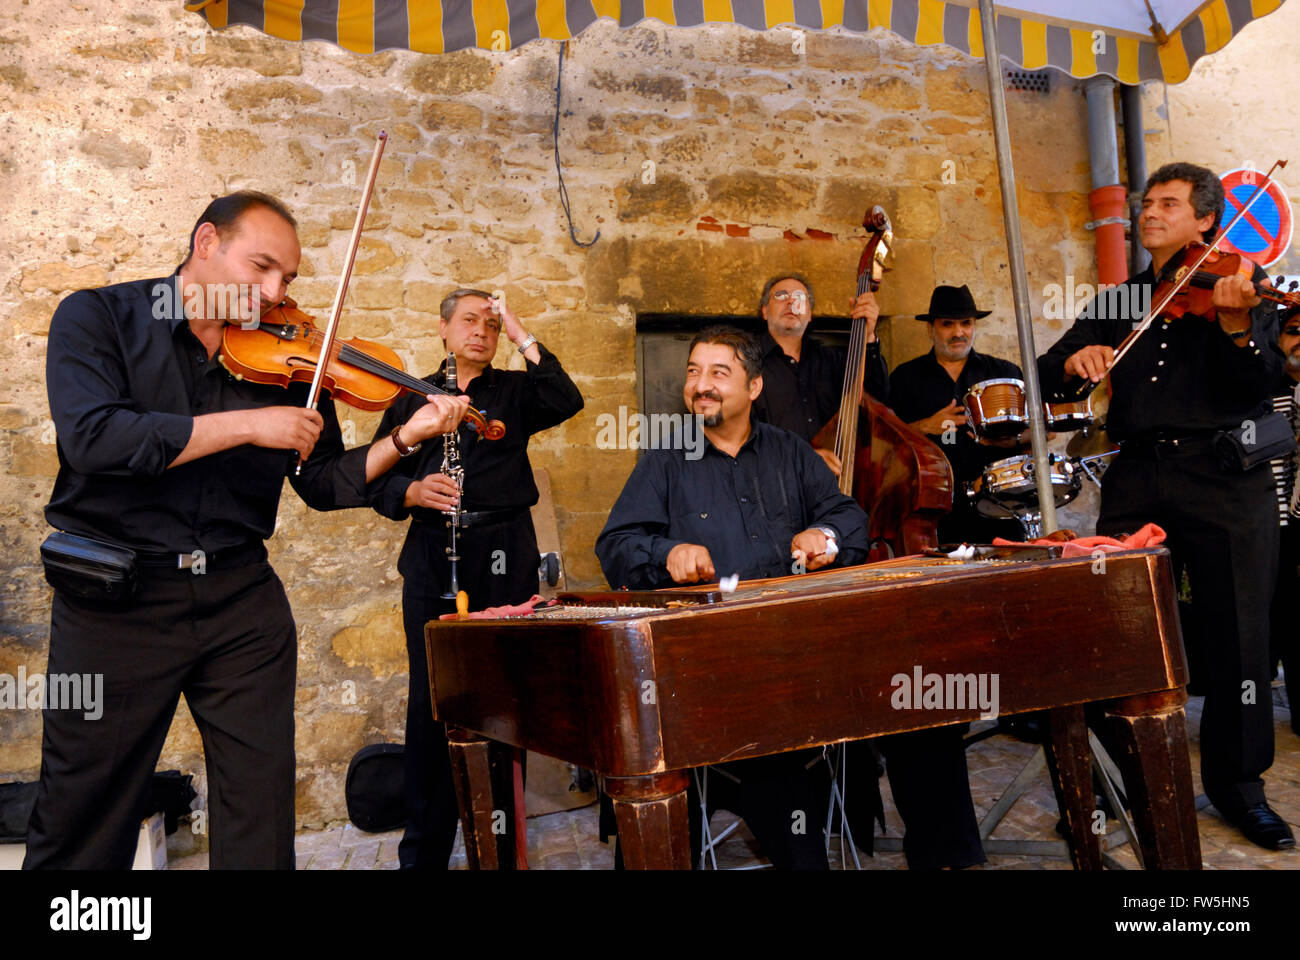 violinist with Romanian gypsy  band, busking in France, with cimbalom (a 'concert hammer dulcimer'), Rumanian - Stock Image